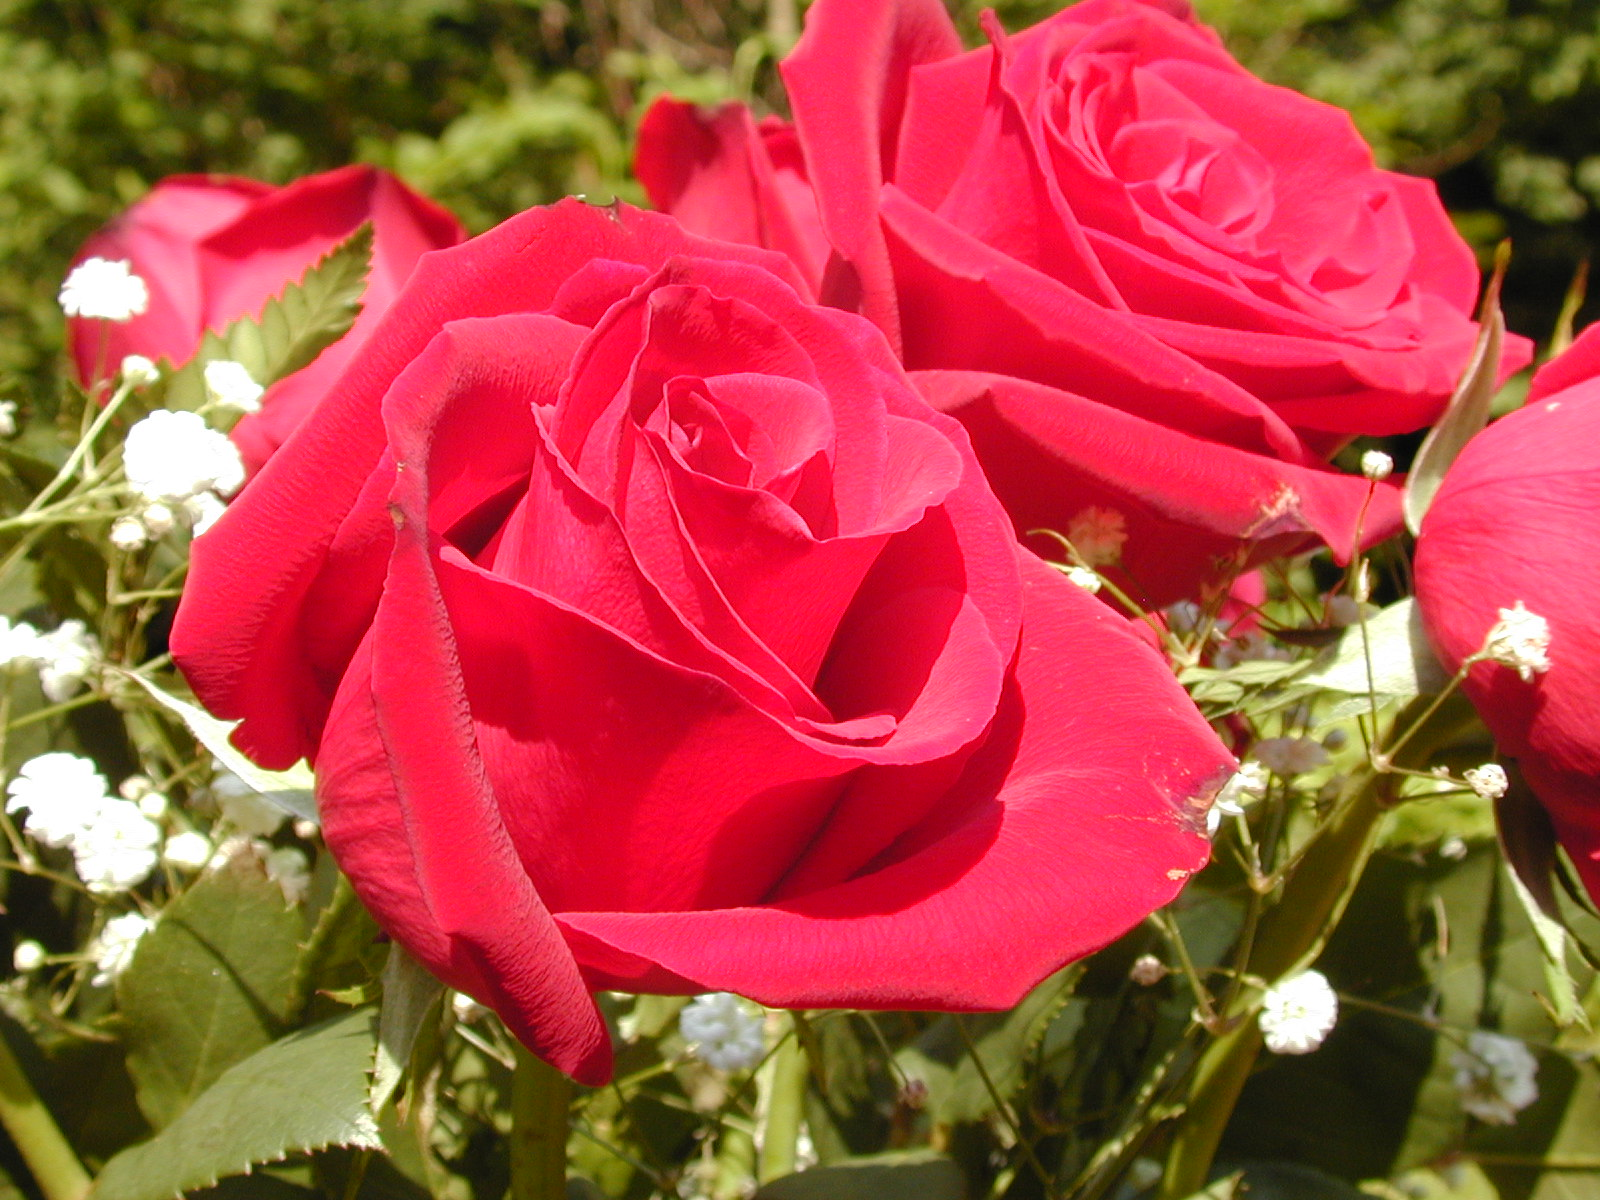 Rose flowers wallpapers real hd wallpapers - Red rose flower hd images ...